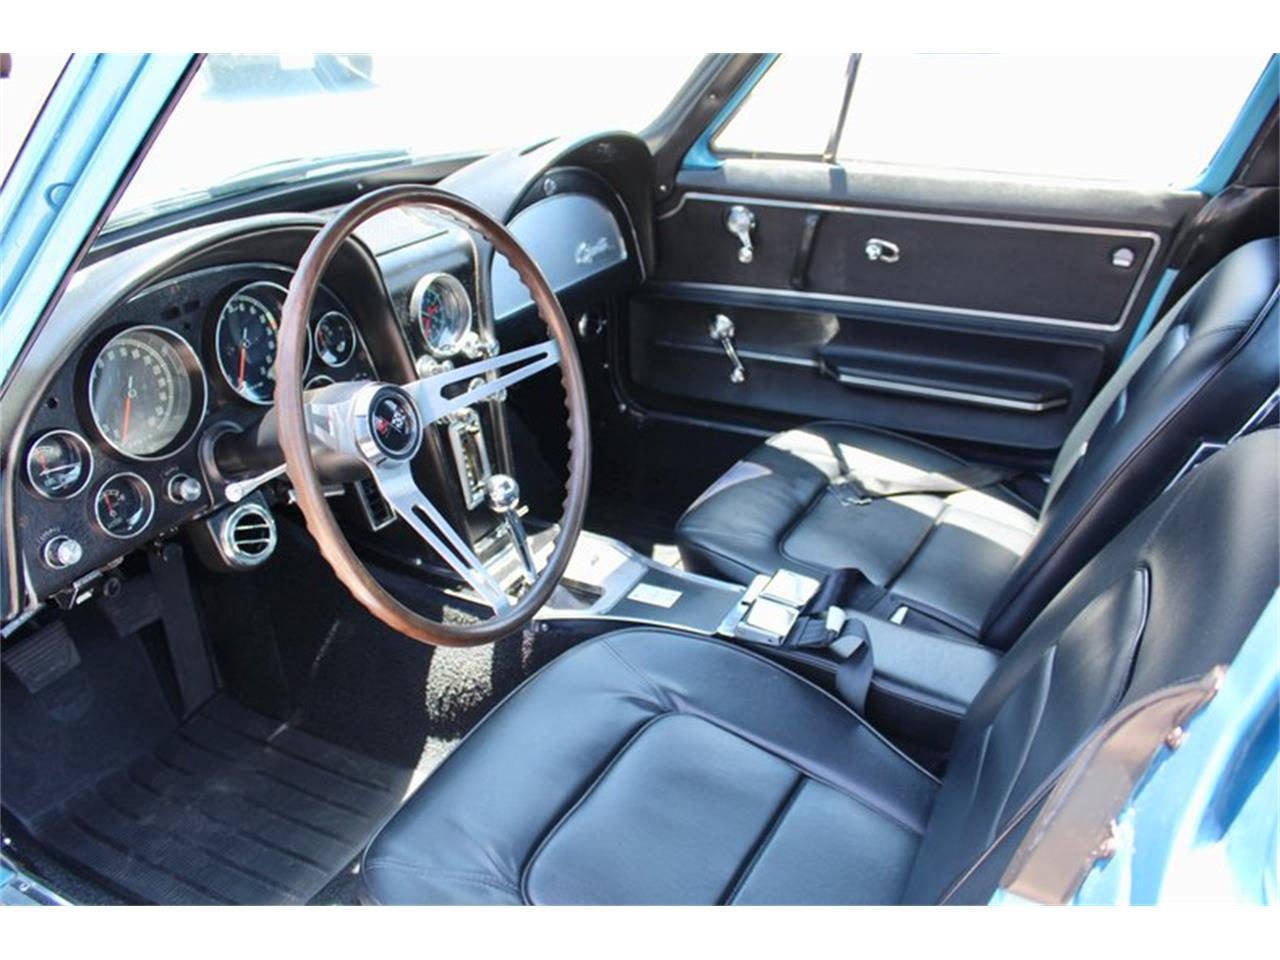 Large Picture of '65 Corvette located in Sarasota Florida - $69,500.00 Offered by Classic Cars of Sarasota - QSRR